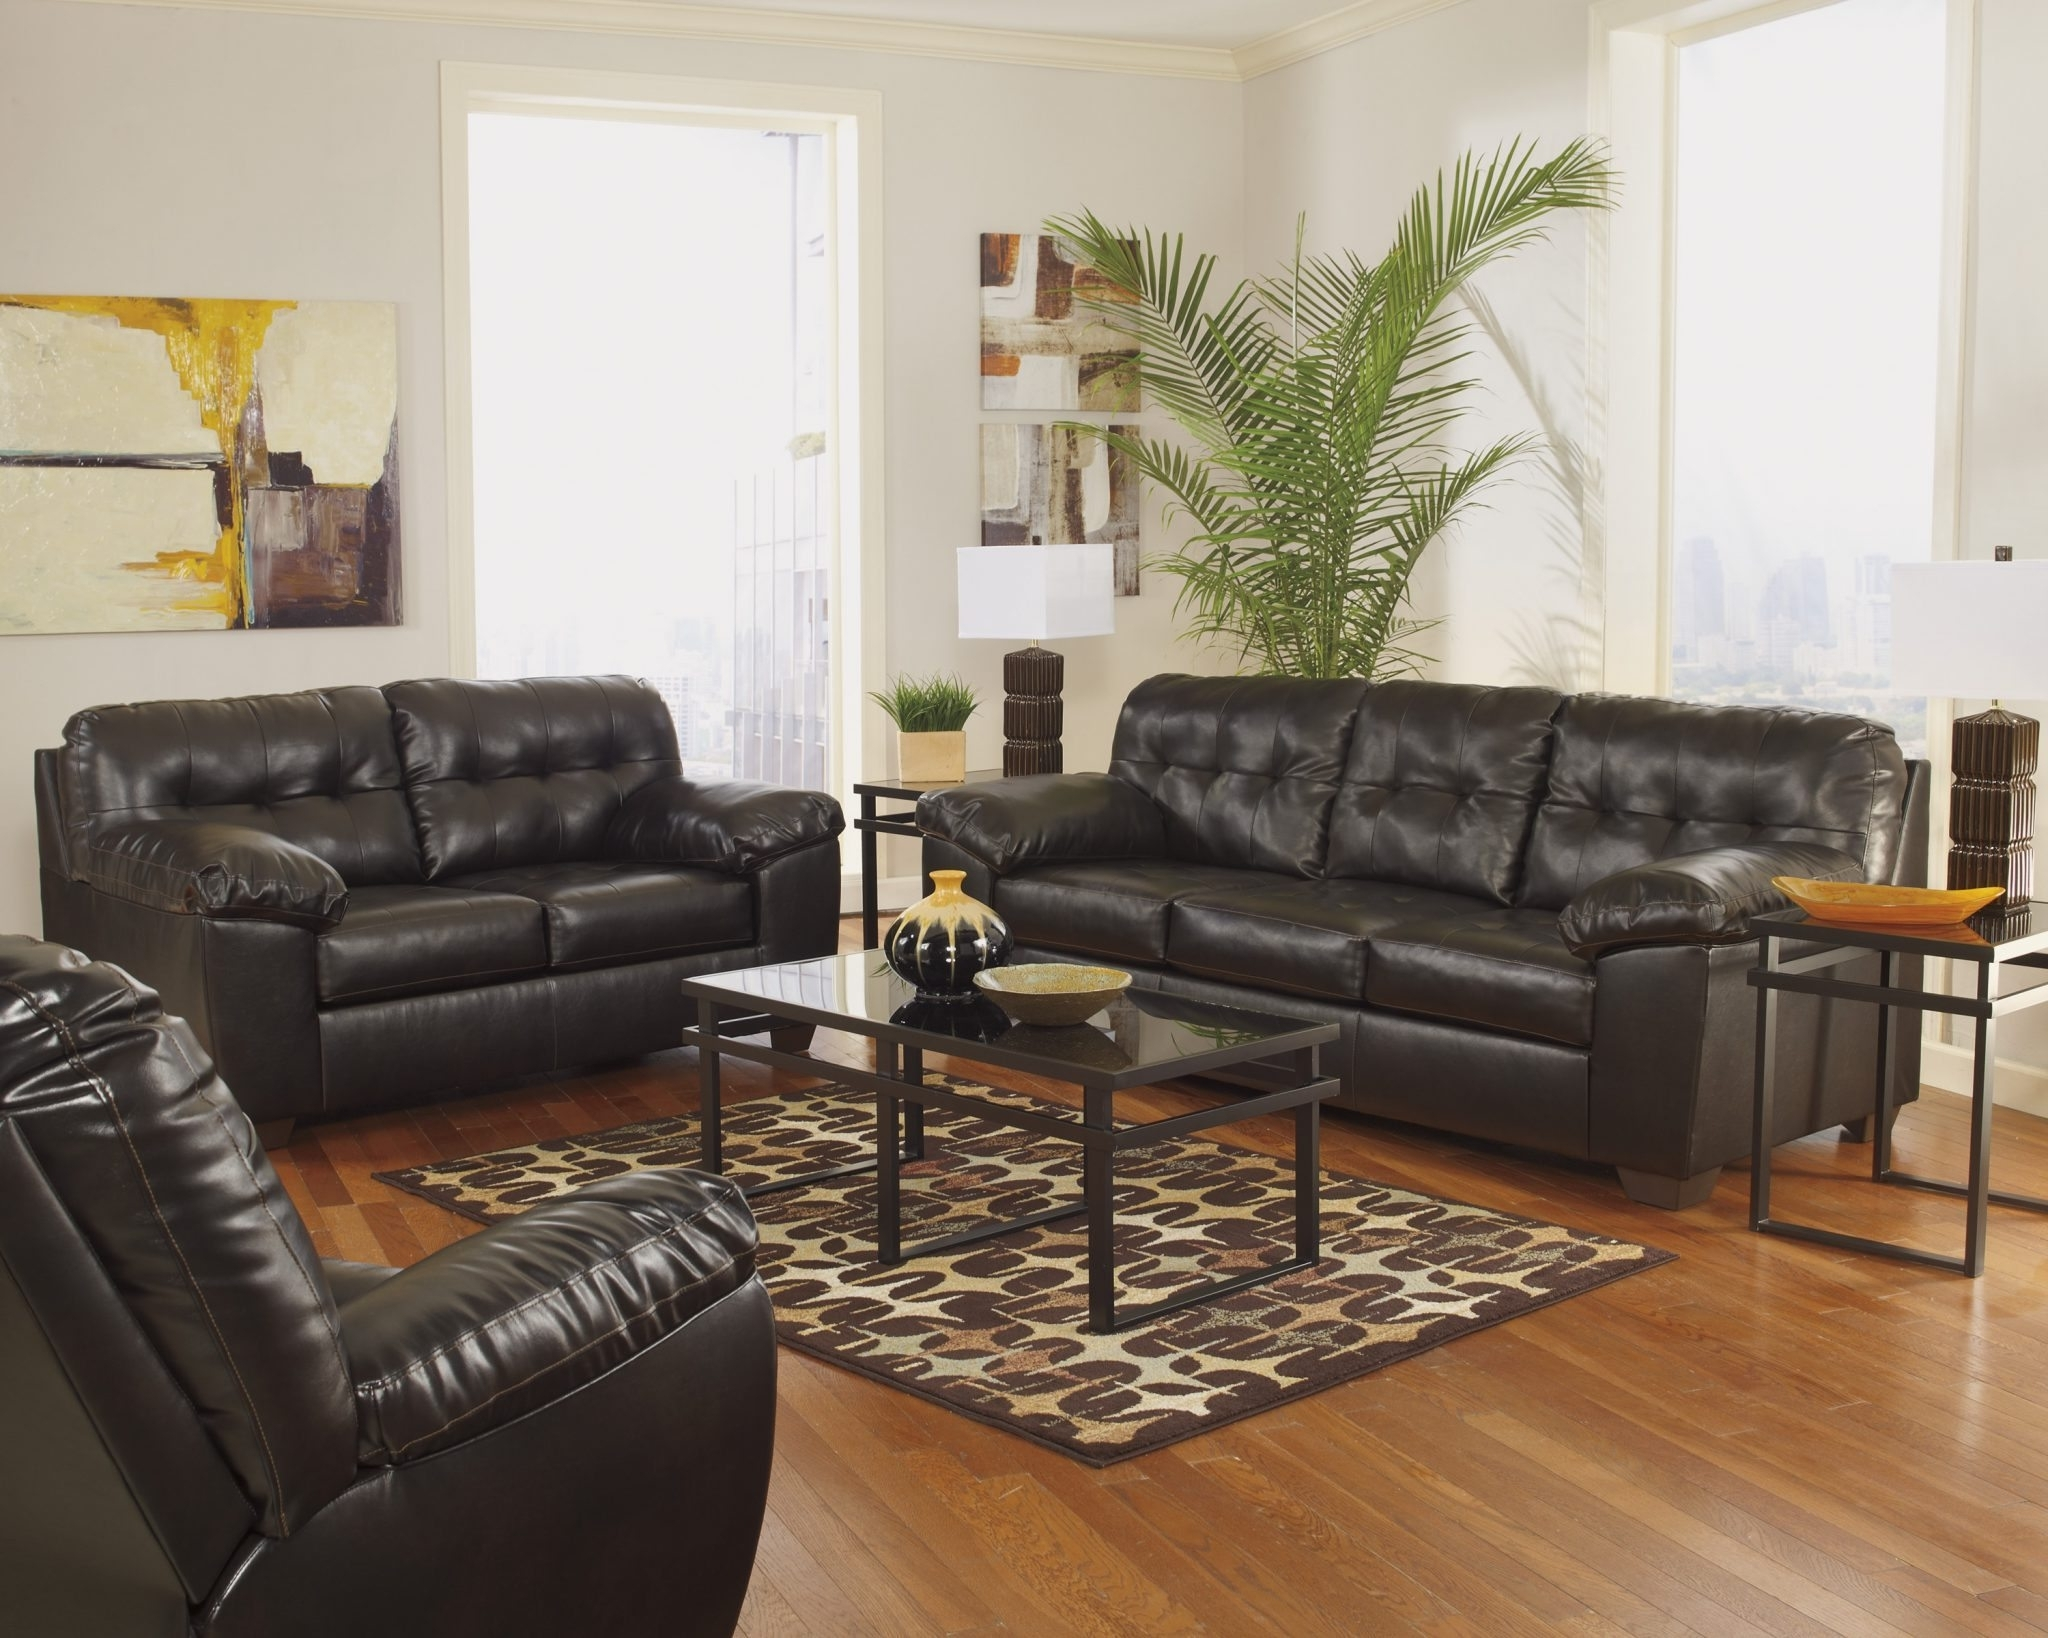 Best Furniture Mentor Oh: Furniture Store – Ashley Furniture Throughout 2017 Ashley Tufted Sofas (View 7 of 15)